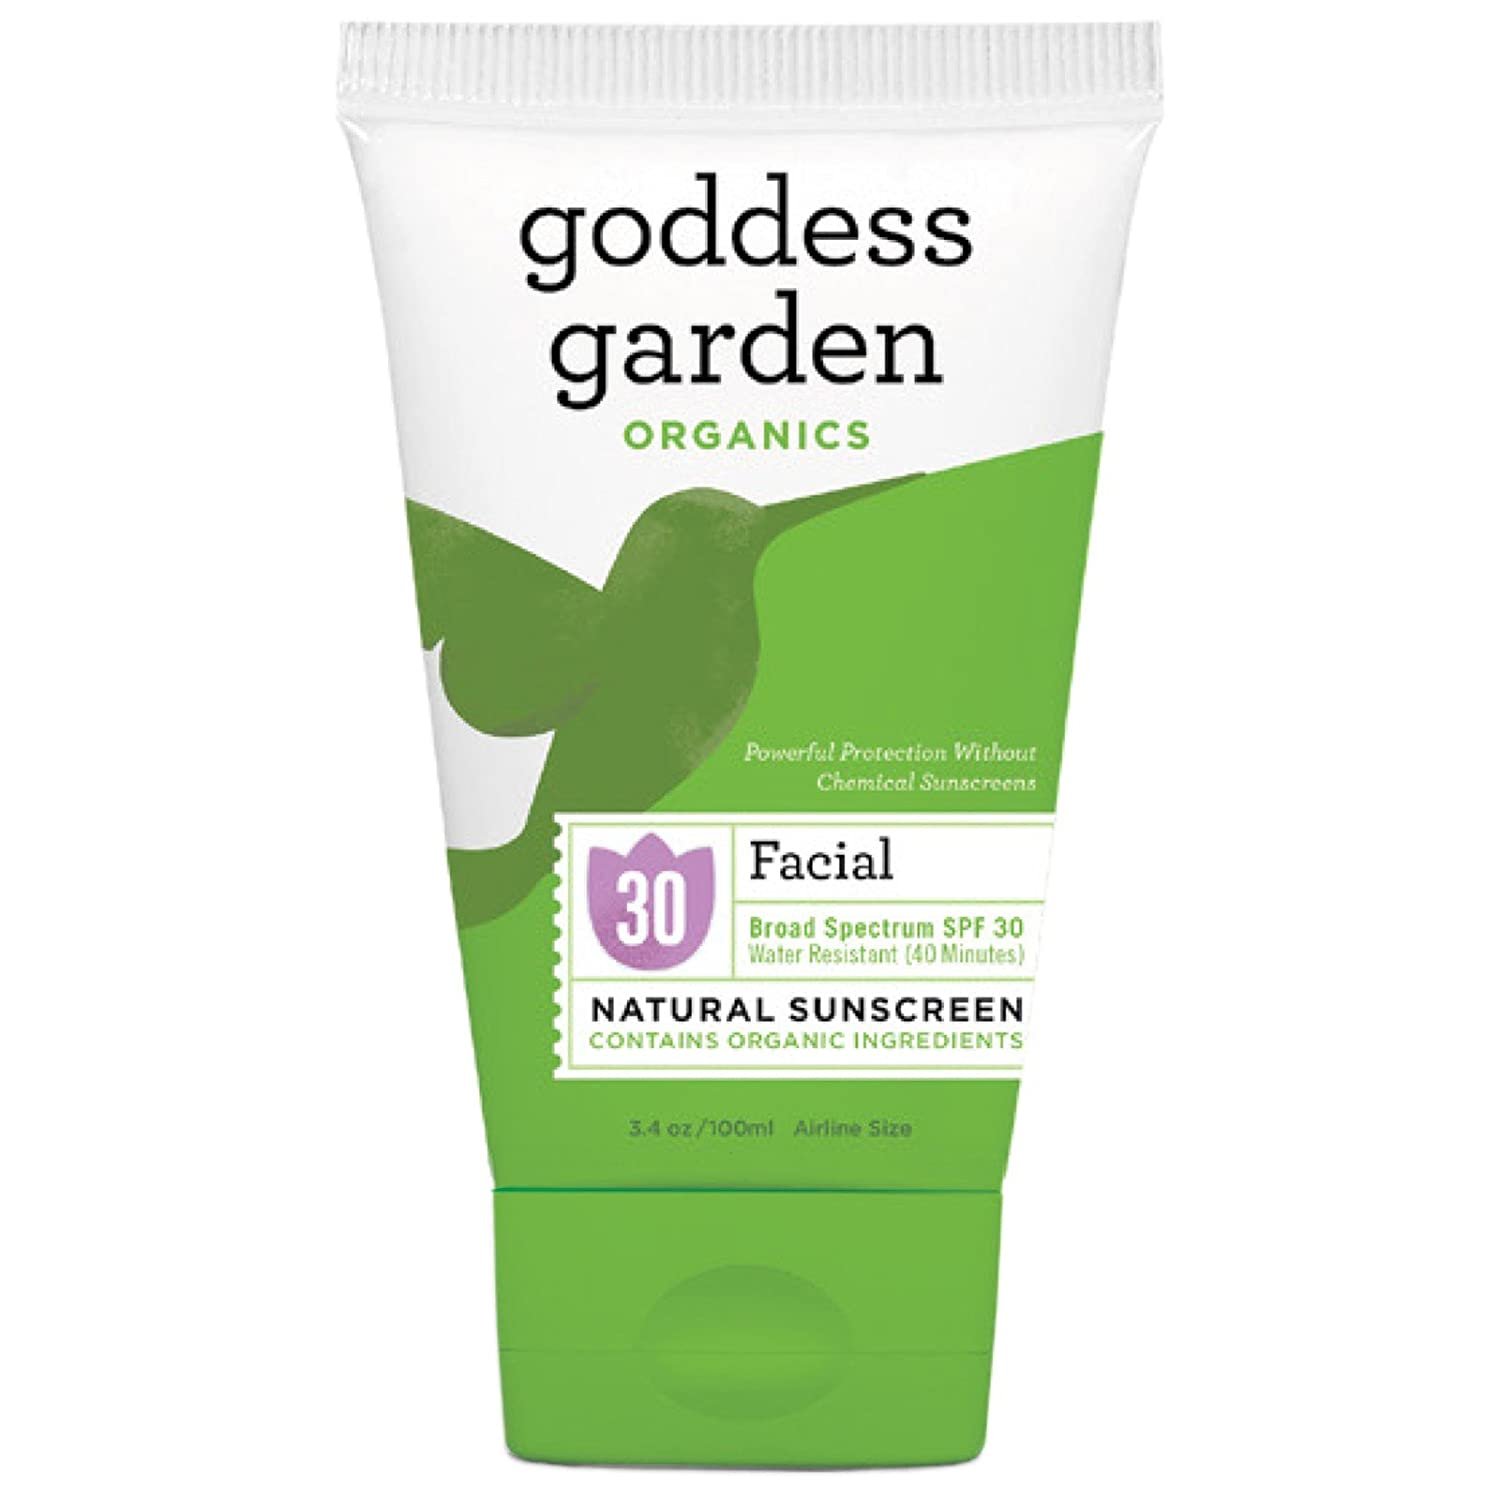 Today's only Selling and selling Goddess Garden Organics Facial Natural 3.4 Sunscreen 30 SPF